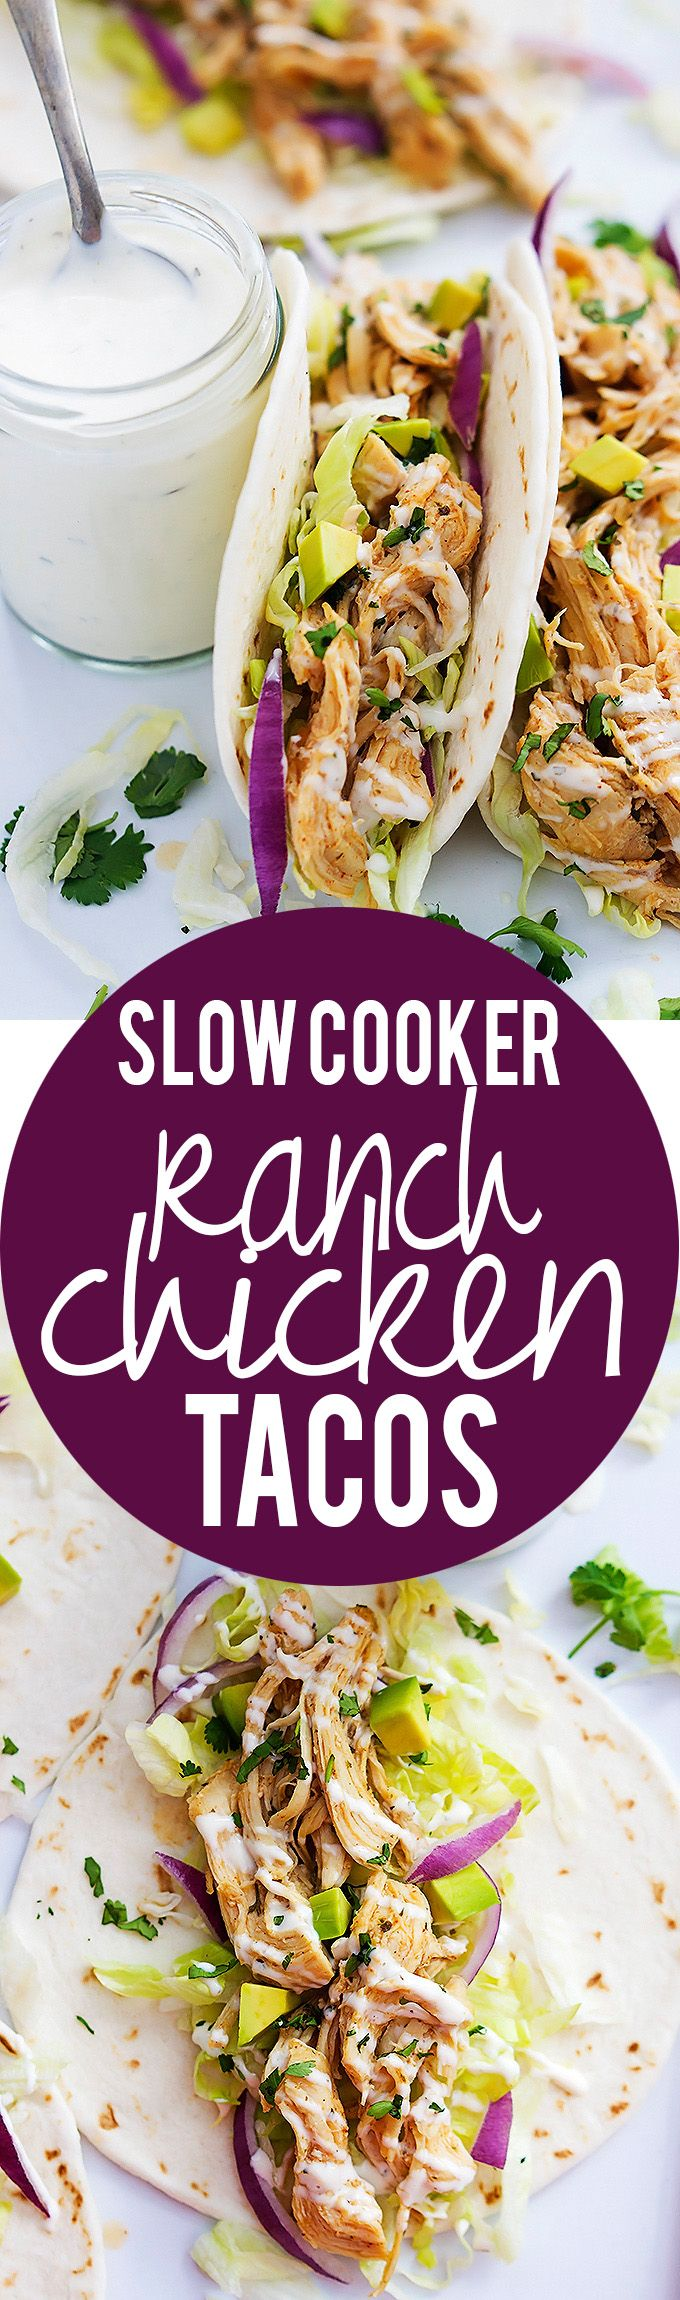 Slow Cooker Ranch Chicken Tacos | Creme de la Crumb